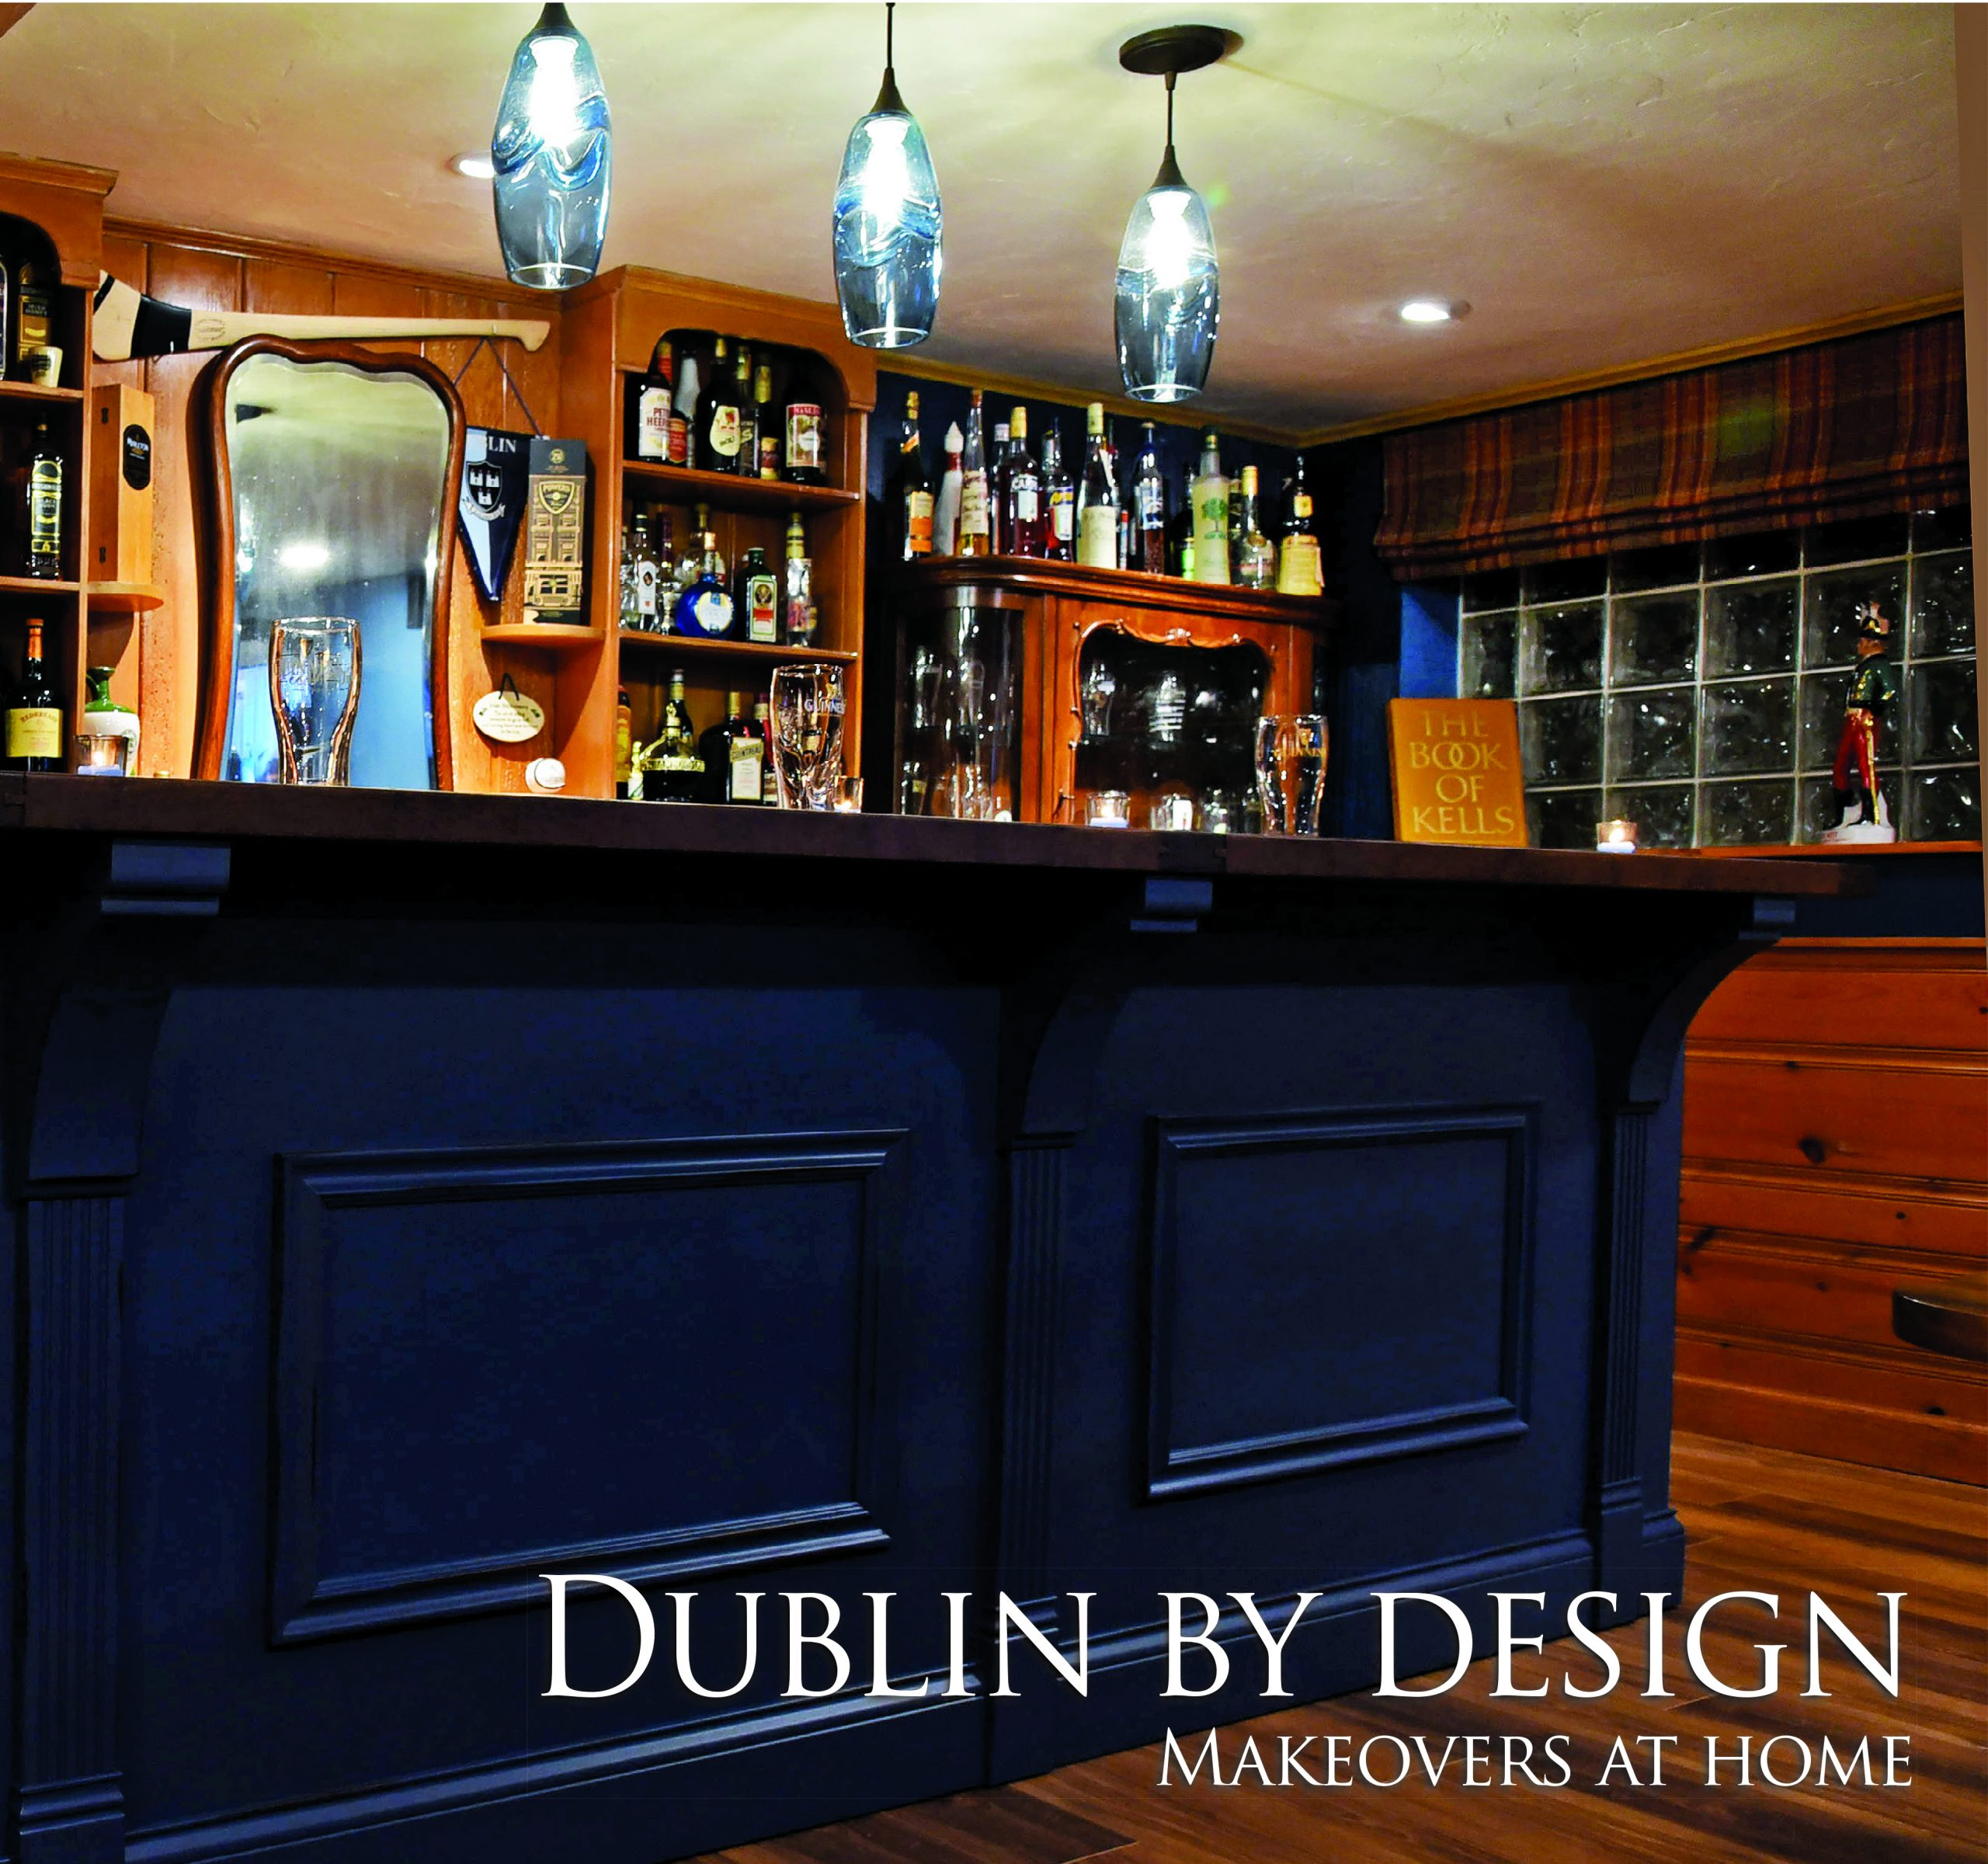 Kim Carroll Interiors transforms basement into 'The Pale,' reminiscent of a Dublin Pub